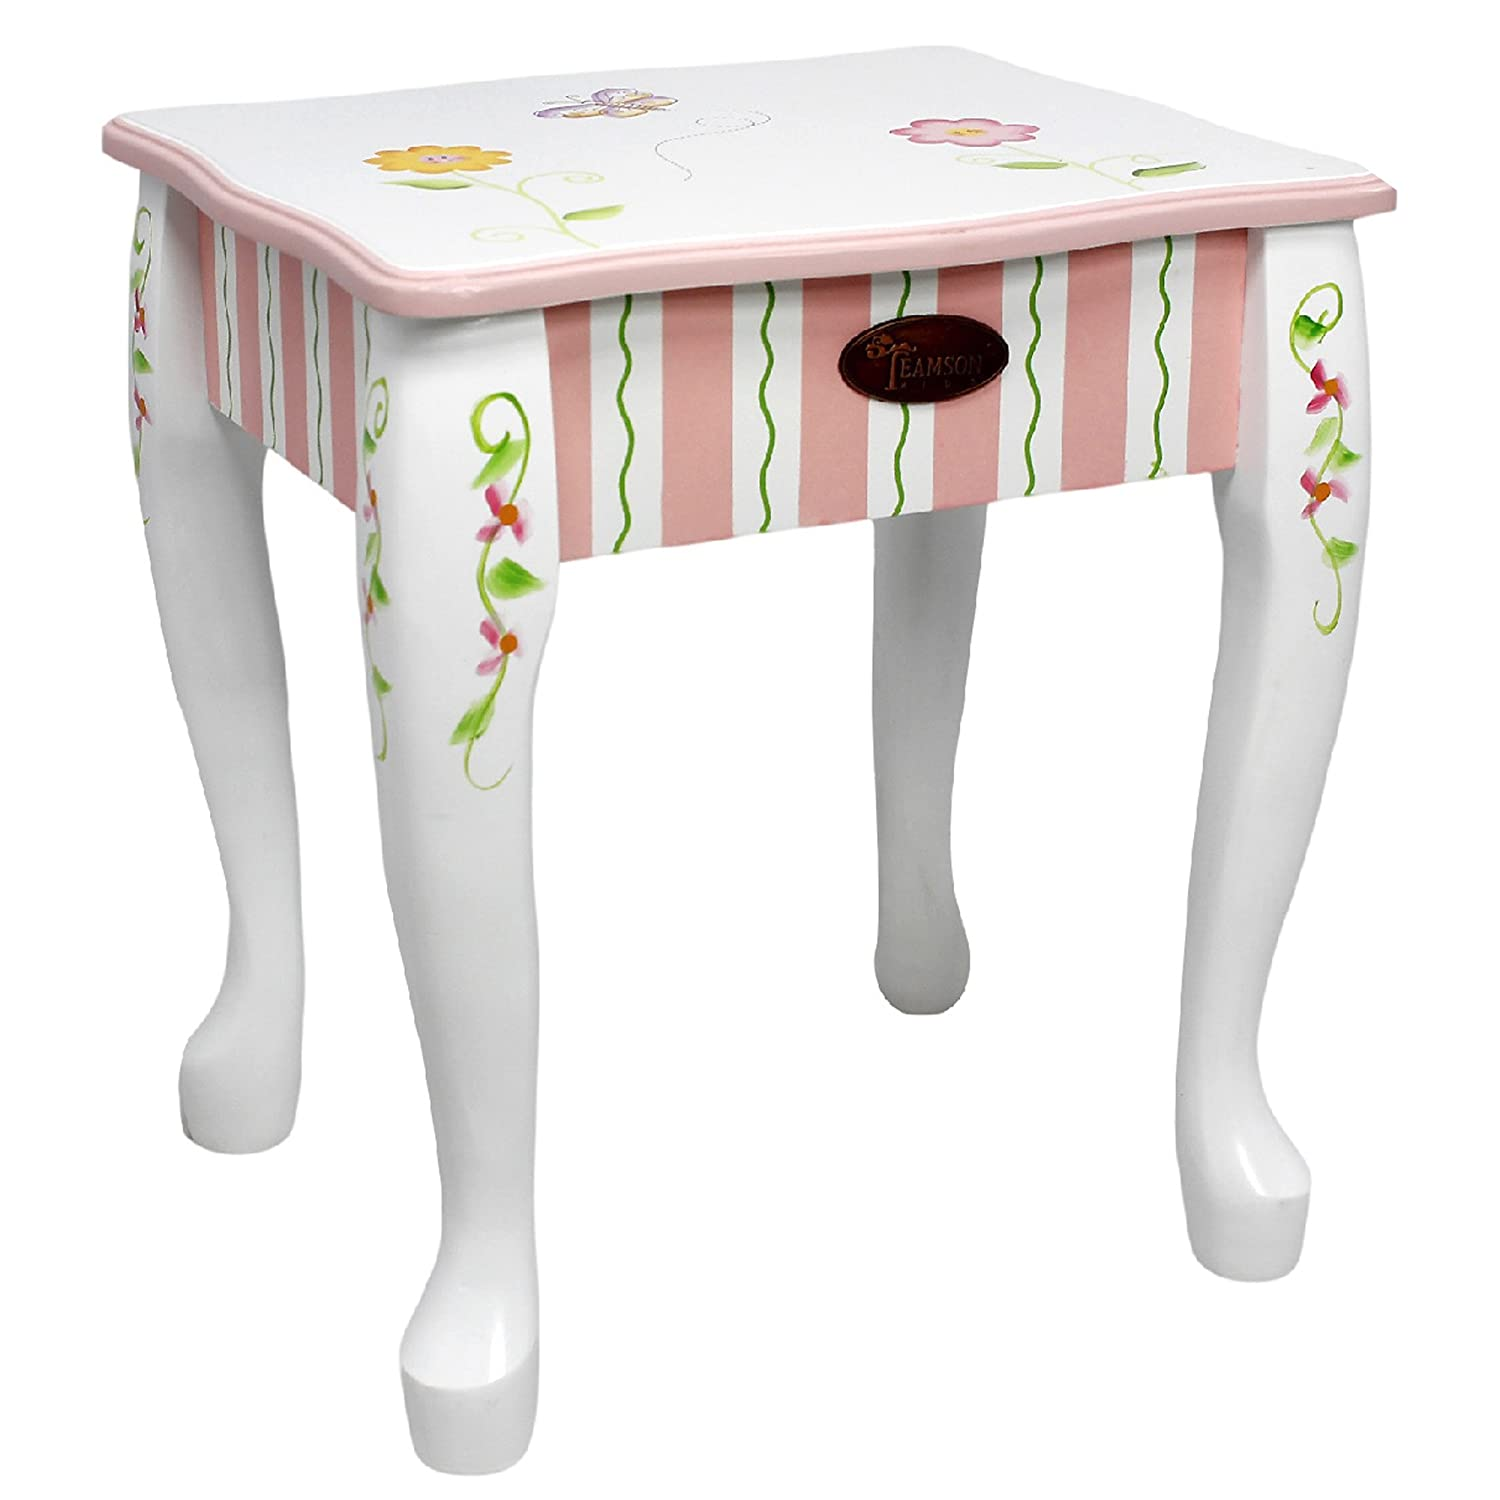 Fantasy Fields - Princess & Frog Thematic Kids Vanity Table and Stool Set  with Mirror Imagination Inspiring Hand Crafted & Hand Painted Details ...